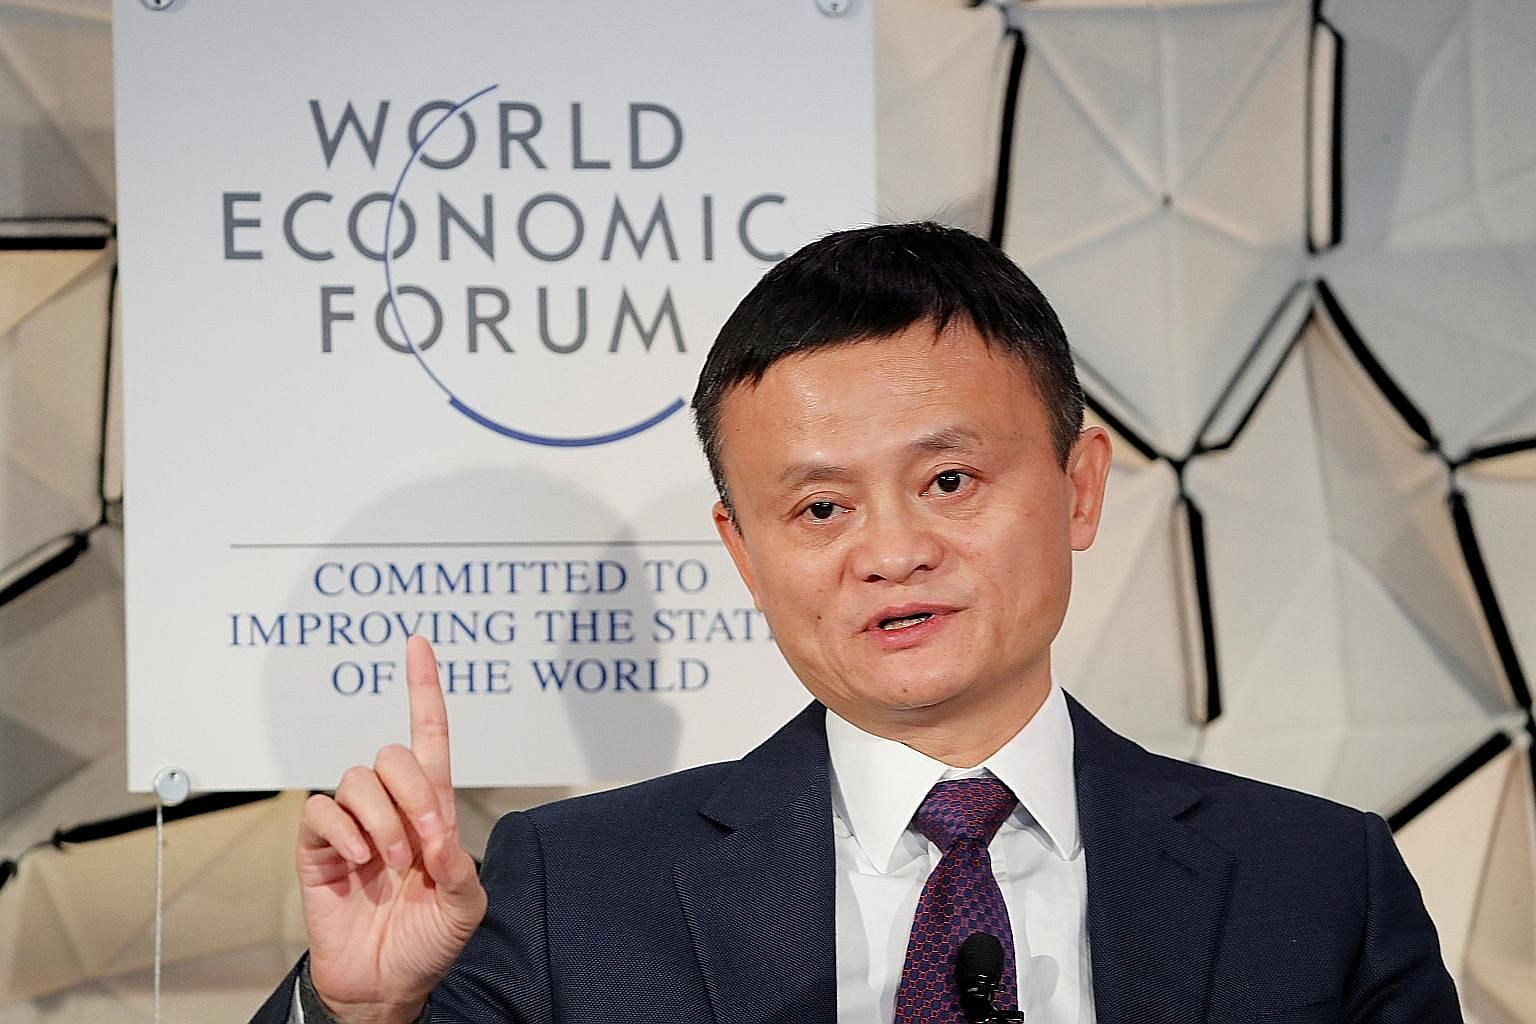 Alibaba founder Jack Ma said in a controversial blog post that a tough overtime schedule is more rewarding for employees.